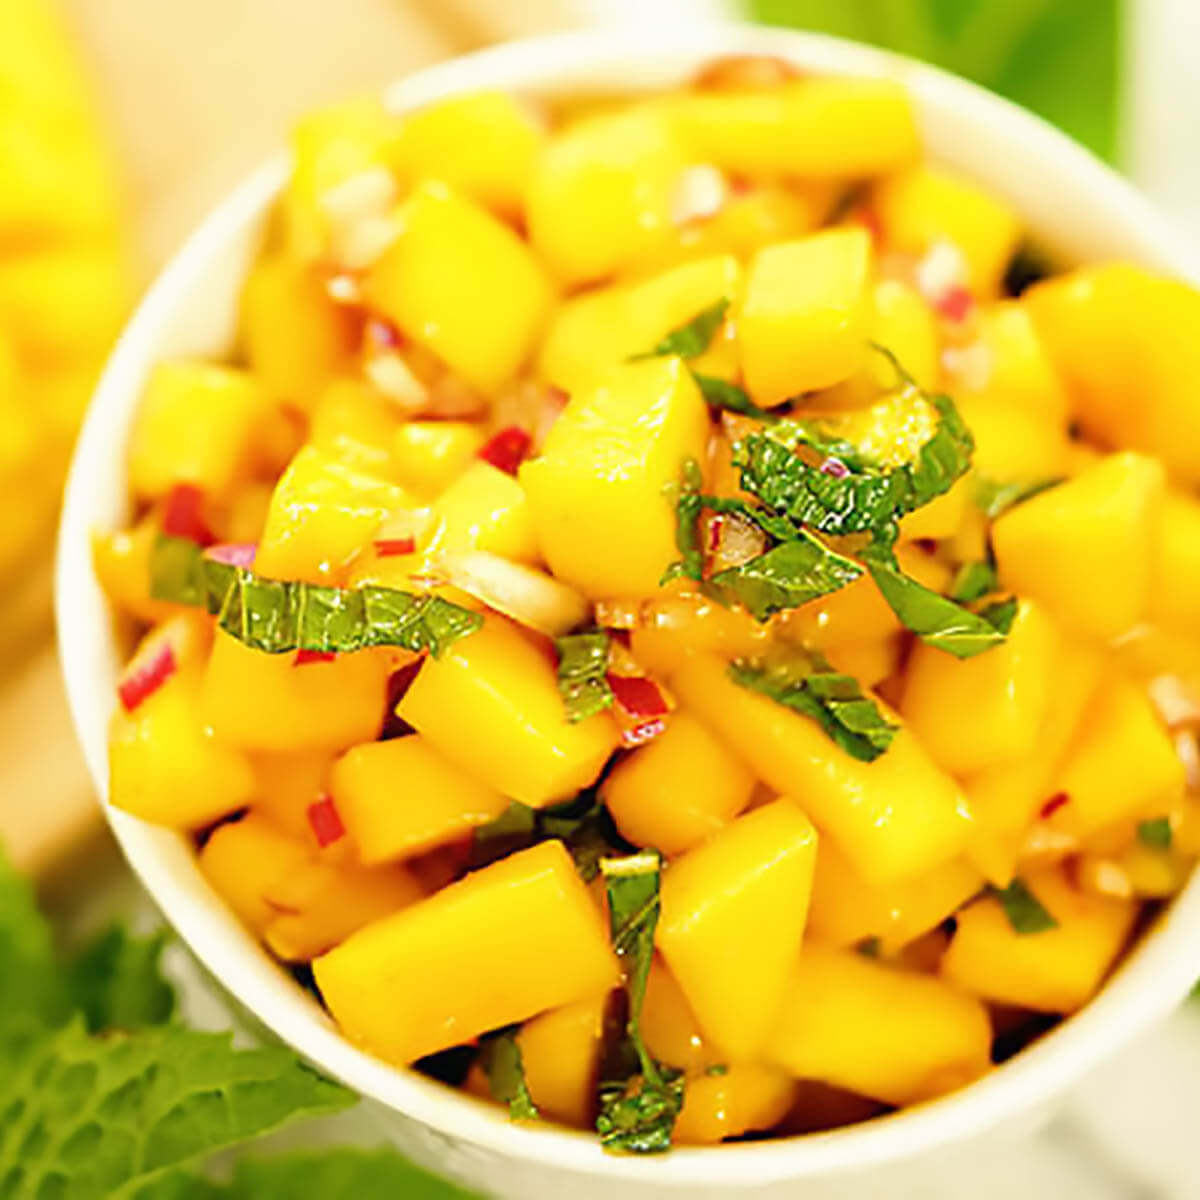 Spicy Mango Salsa in white bowl topped with mint.